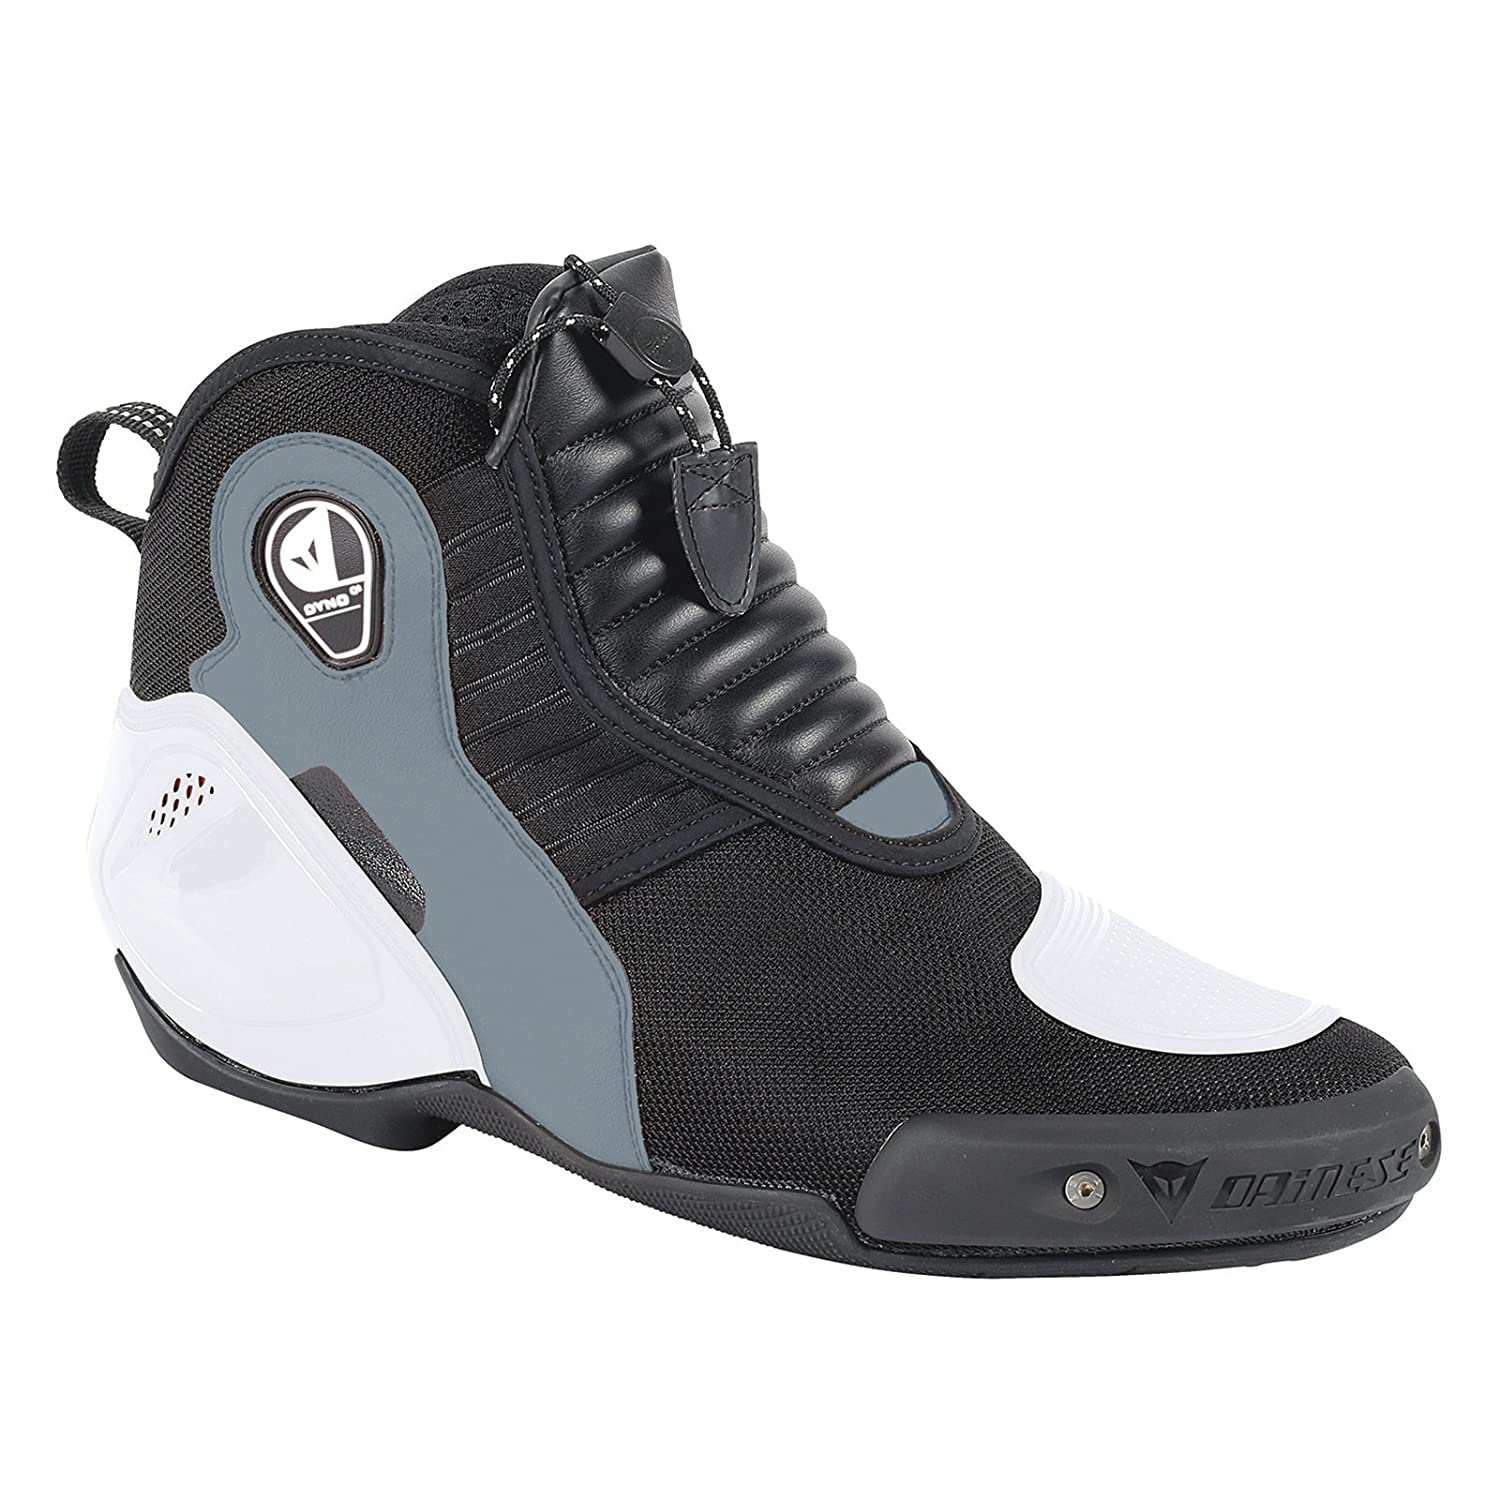 Dainese(ダイネーゼ) DYNO D1 SHOES F13 45 高強度ナイロンメッシュ 春夏秋シーズンに最適 1775179 B019ACN262  29.0 cm